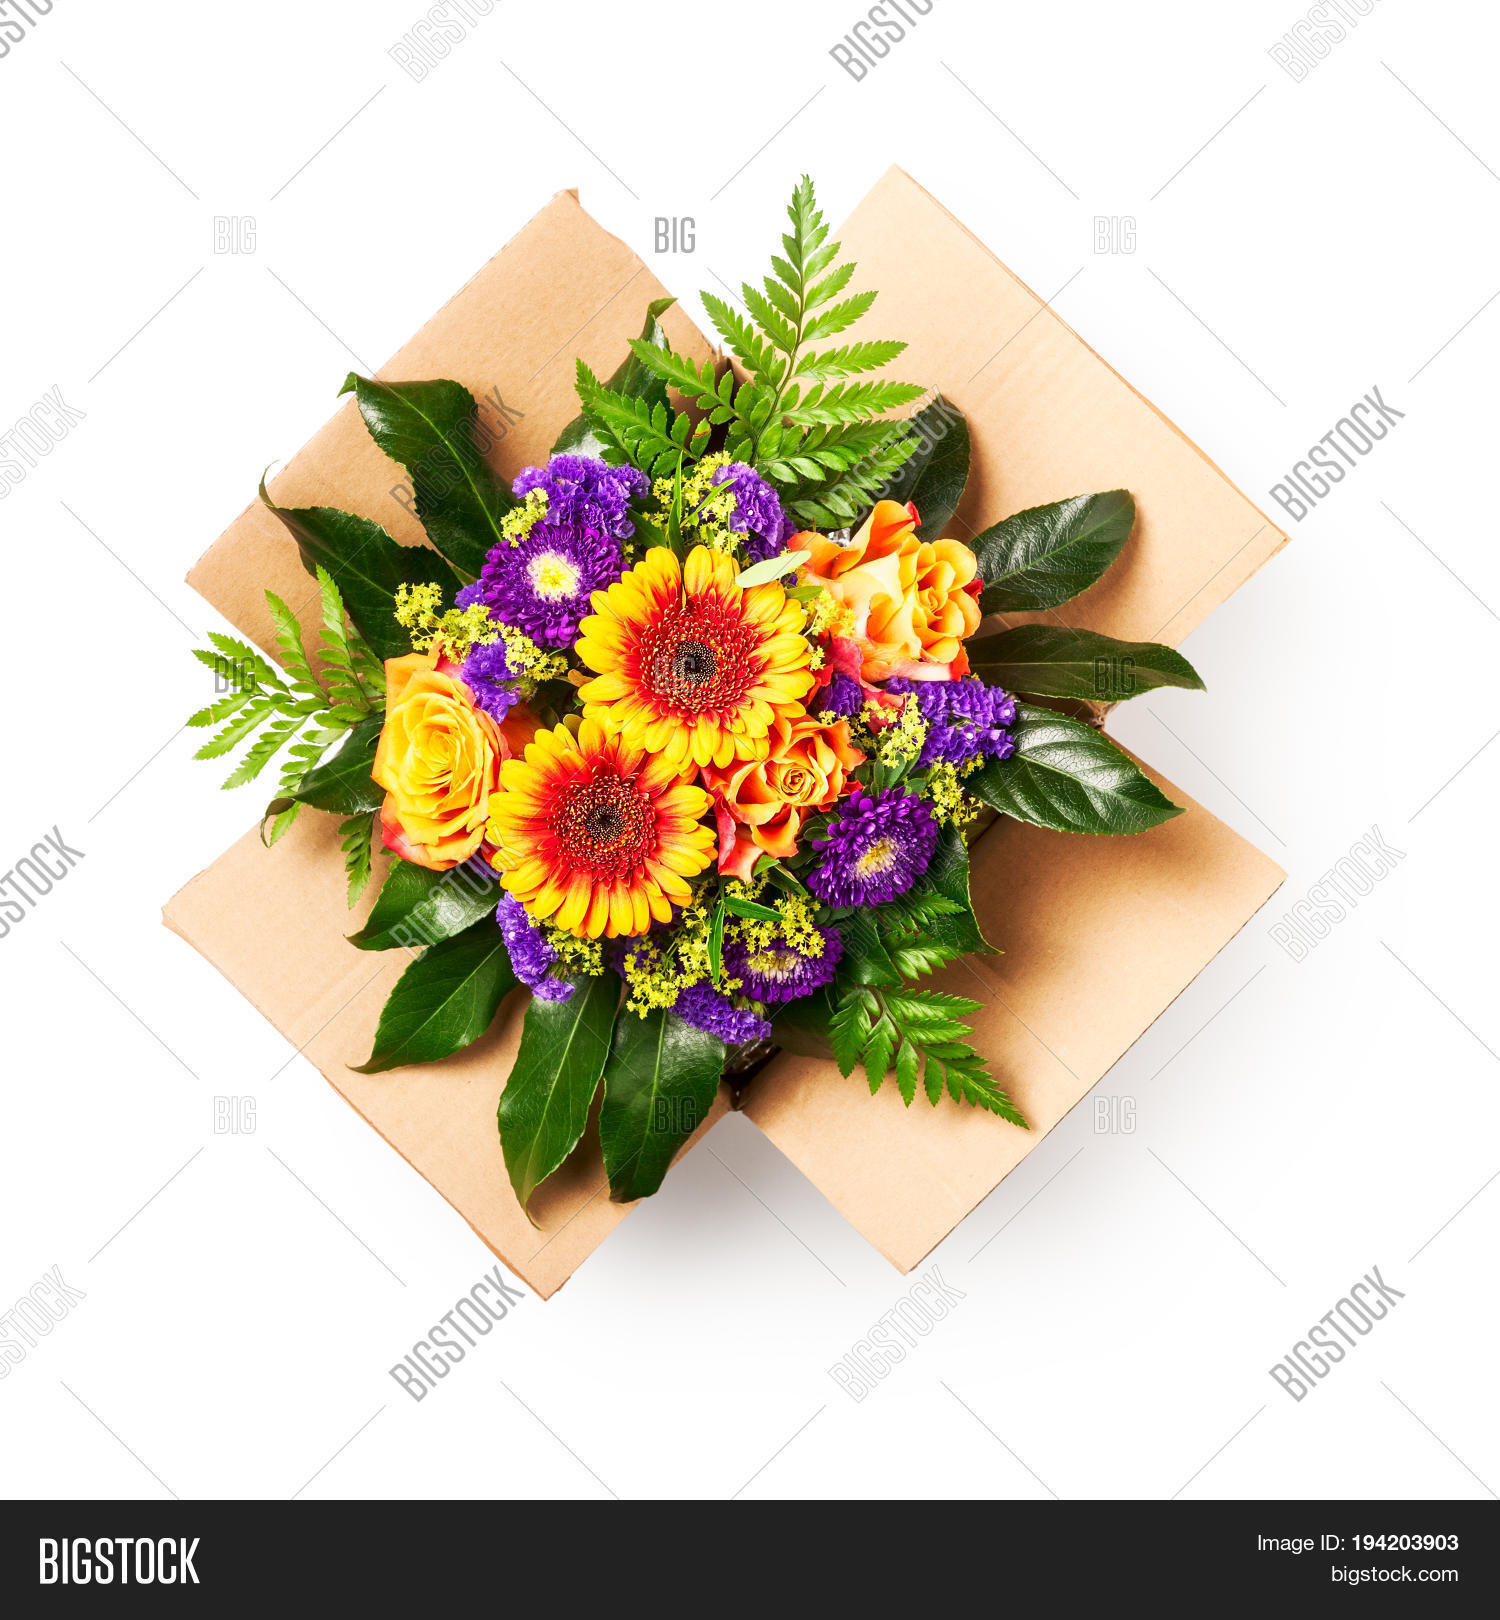 Flower Delivery Image Photo Free Trial Bigstock